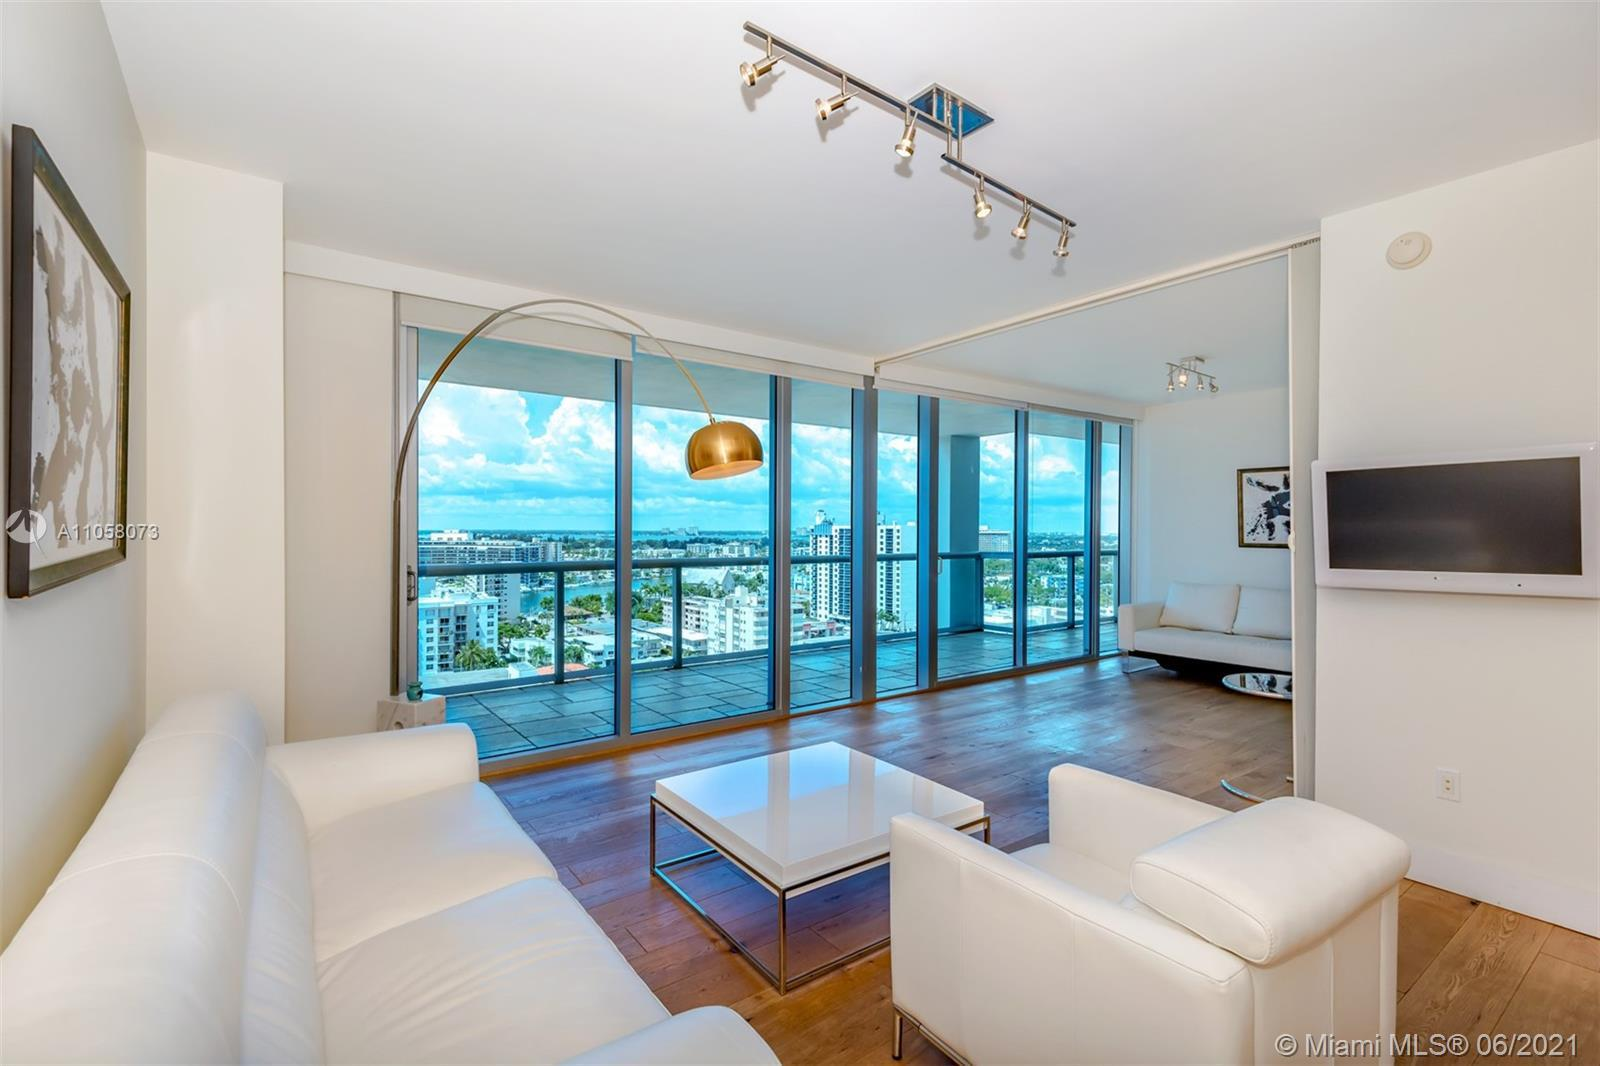 Beautiful 2 bed 2 bath apartment at Carillon Miami Wellness Resort, a premier oceanfront-luxury prop